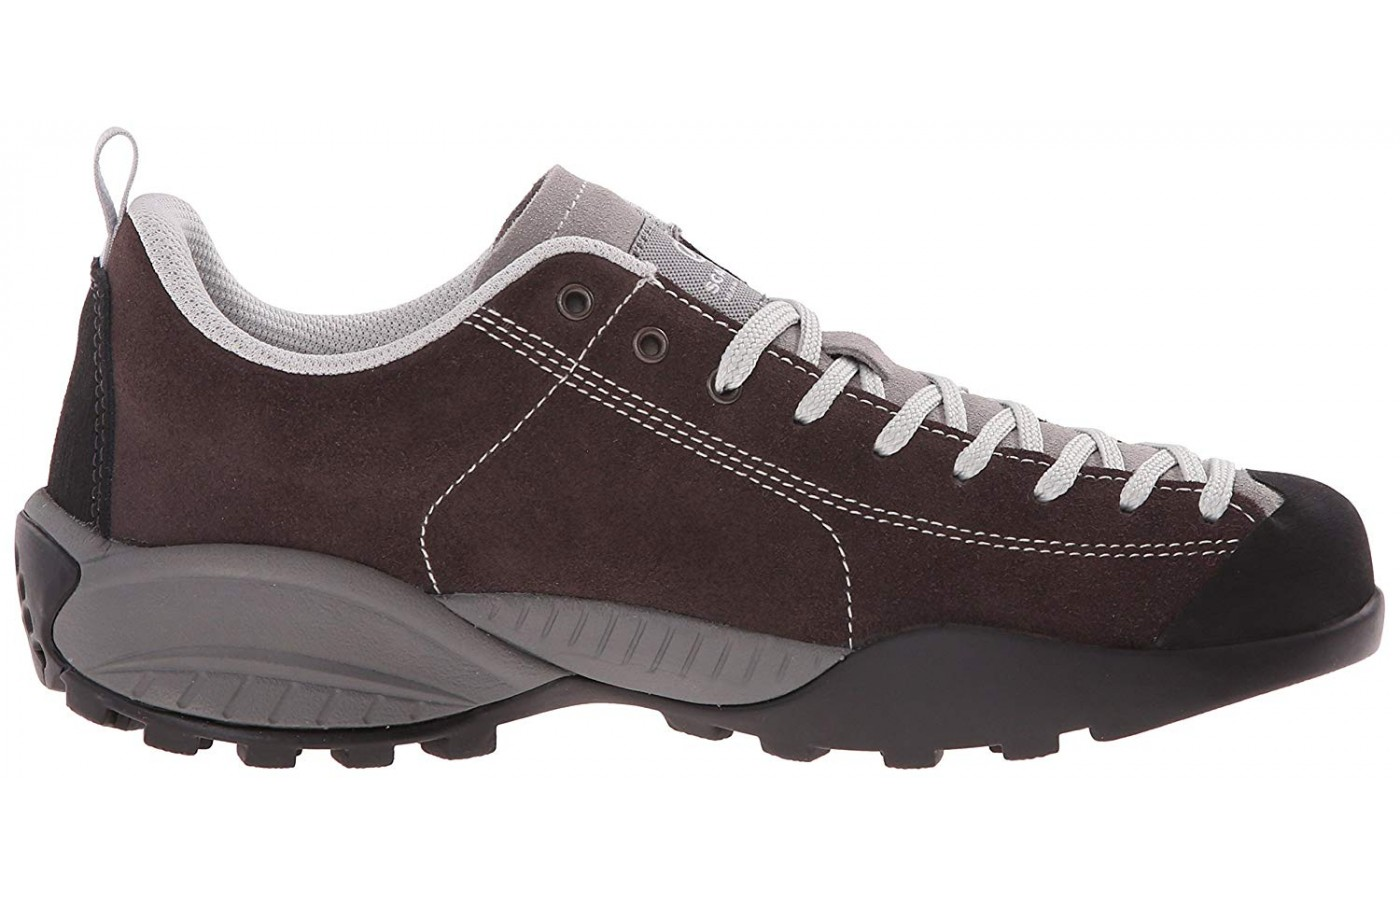 The upper is made of suede leather.